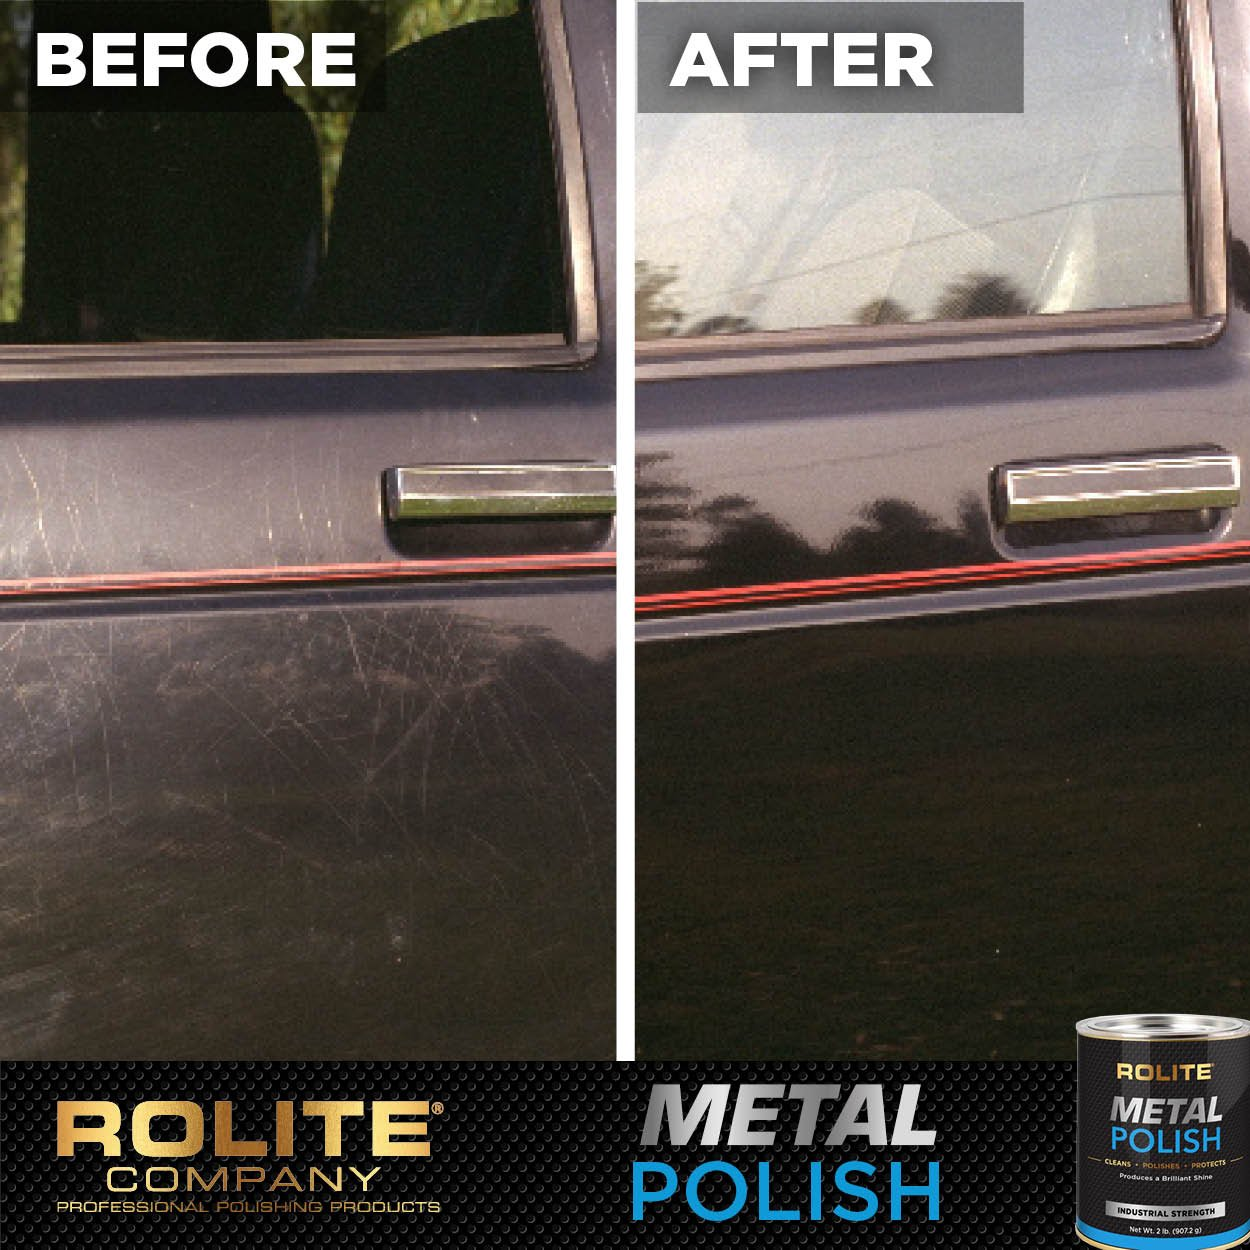 Rolite Metal Polish Paste (10lb) for Aluminum, Brass, Bronze, Chrome, Copper, Gold, Nickel and Stainless Steel by Rolite (Image #5)